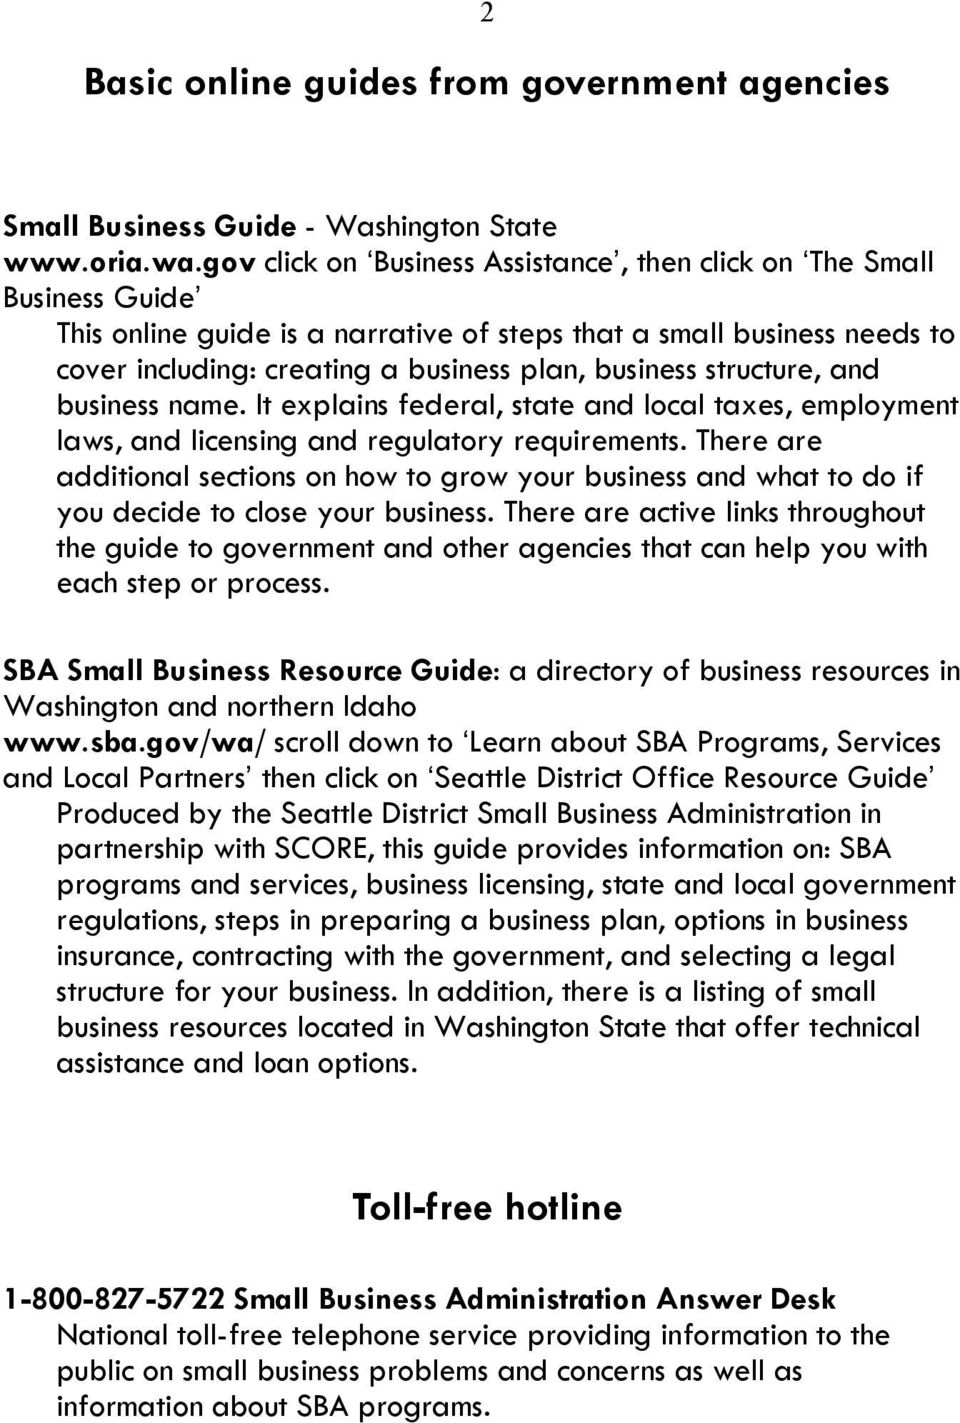 structure, and business name. It explains federal, state and local taxes, employment laws, and licensing and regulatory requirements.